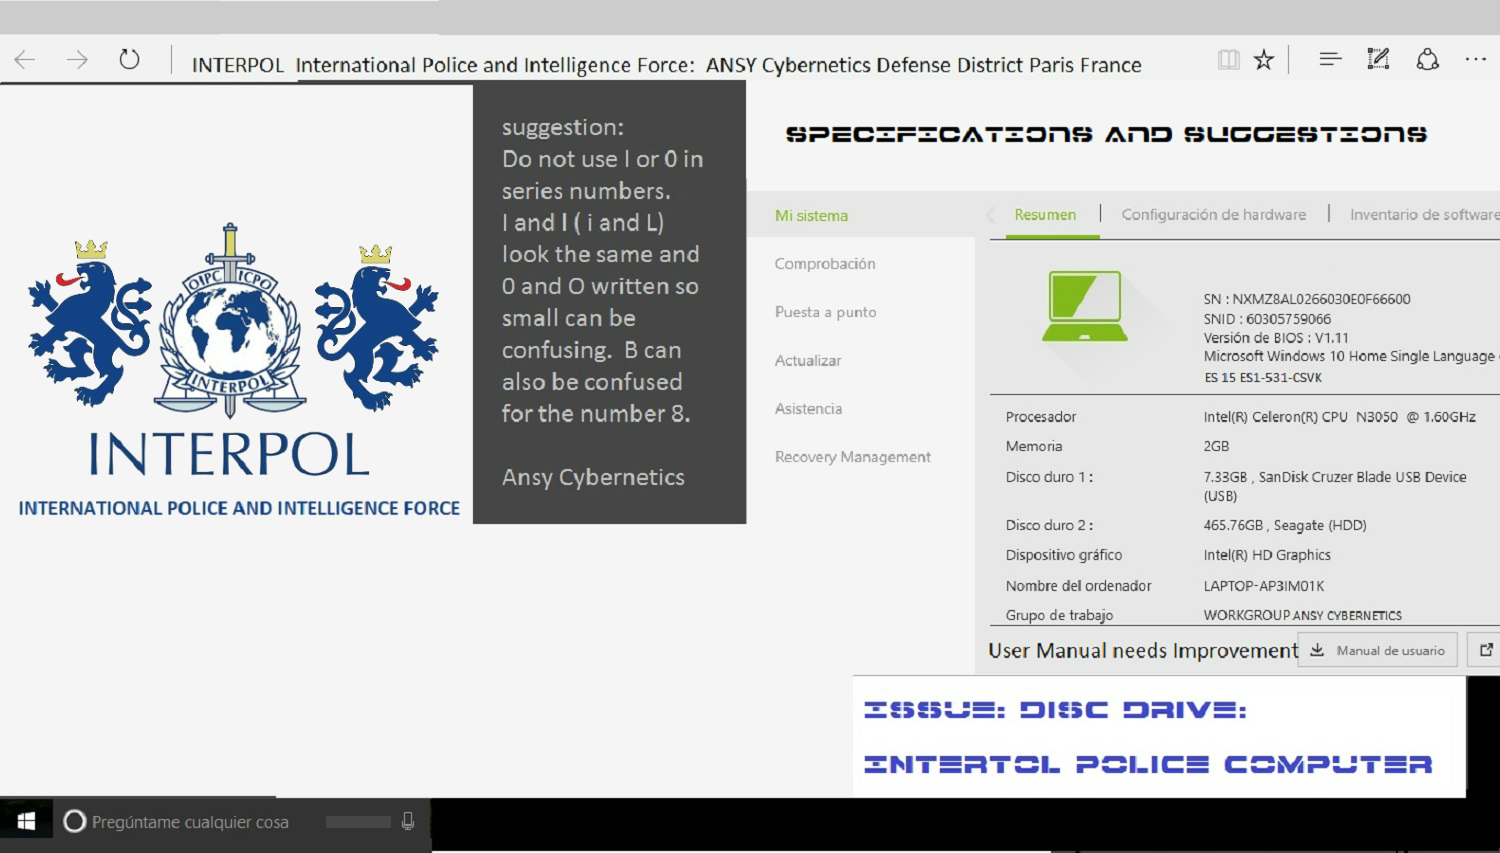 Ans cybernetics le sige interpol international police and ansy cybnernetics specifications and suggestions biocorpaavc Choice Image